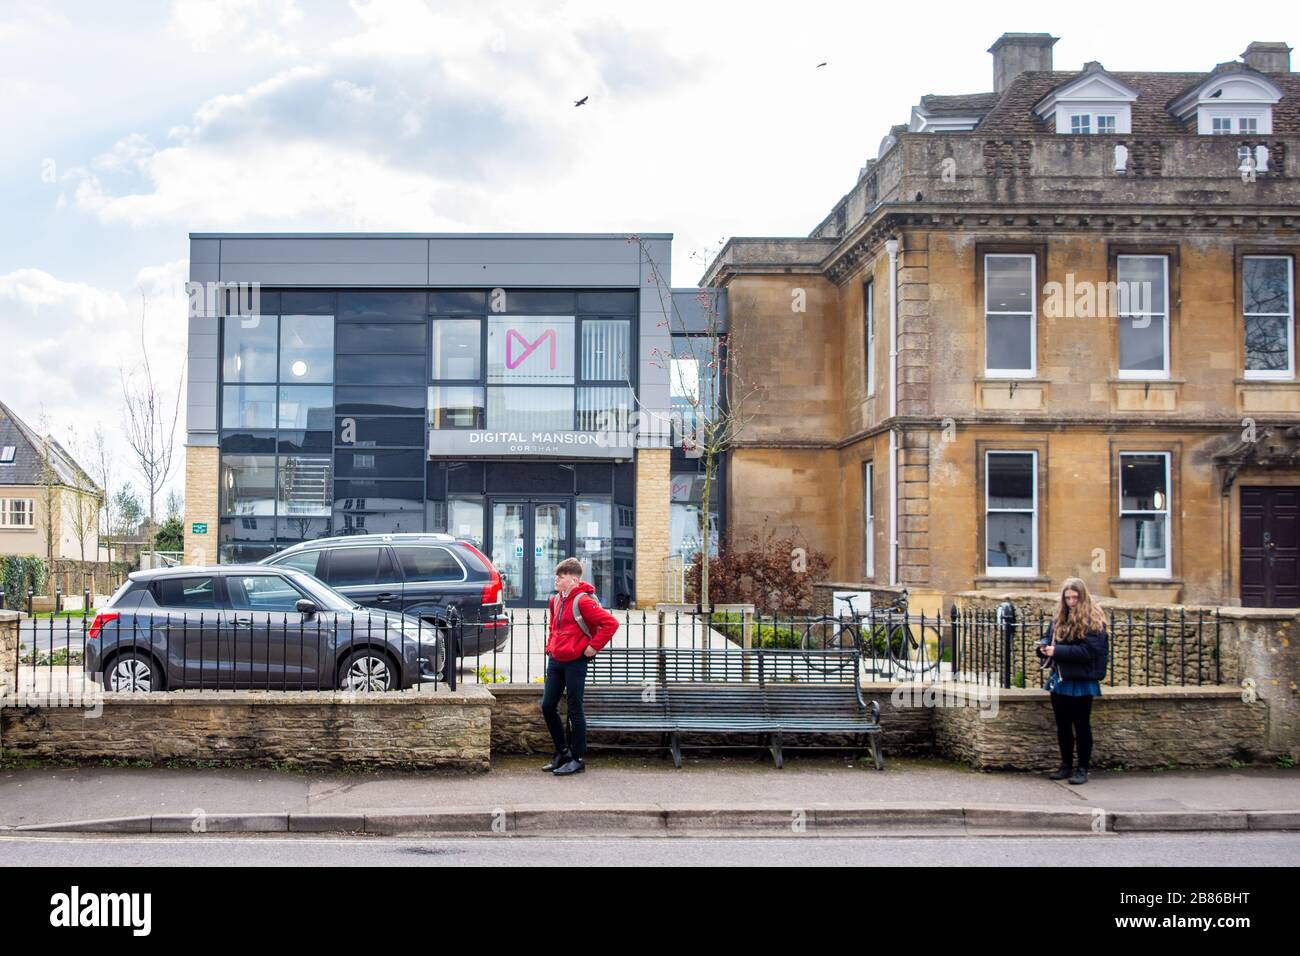 The modern architecture extension onto a listed building forming part of the Digital Mansion work environment in Corsham Wiltshire Stock Photo